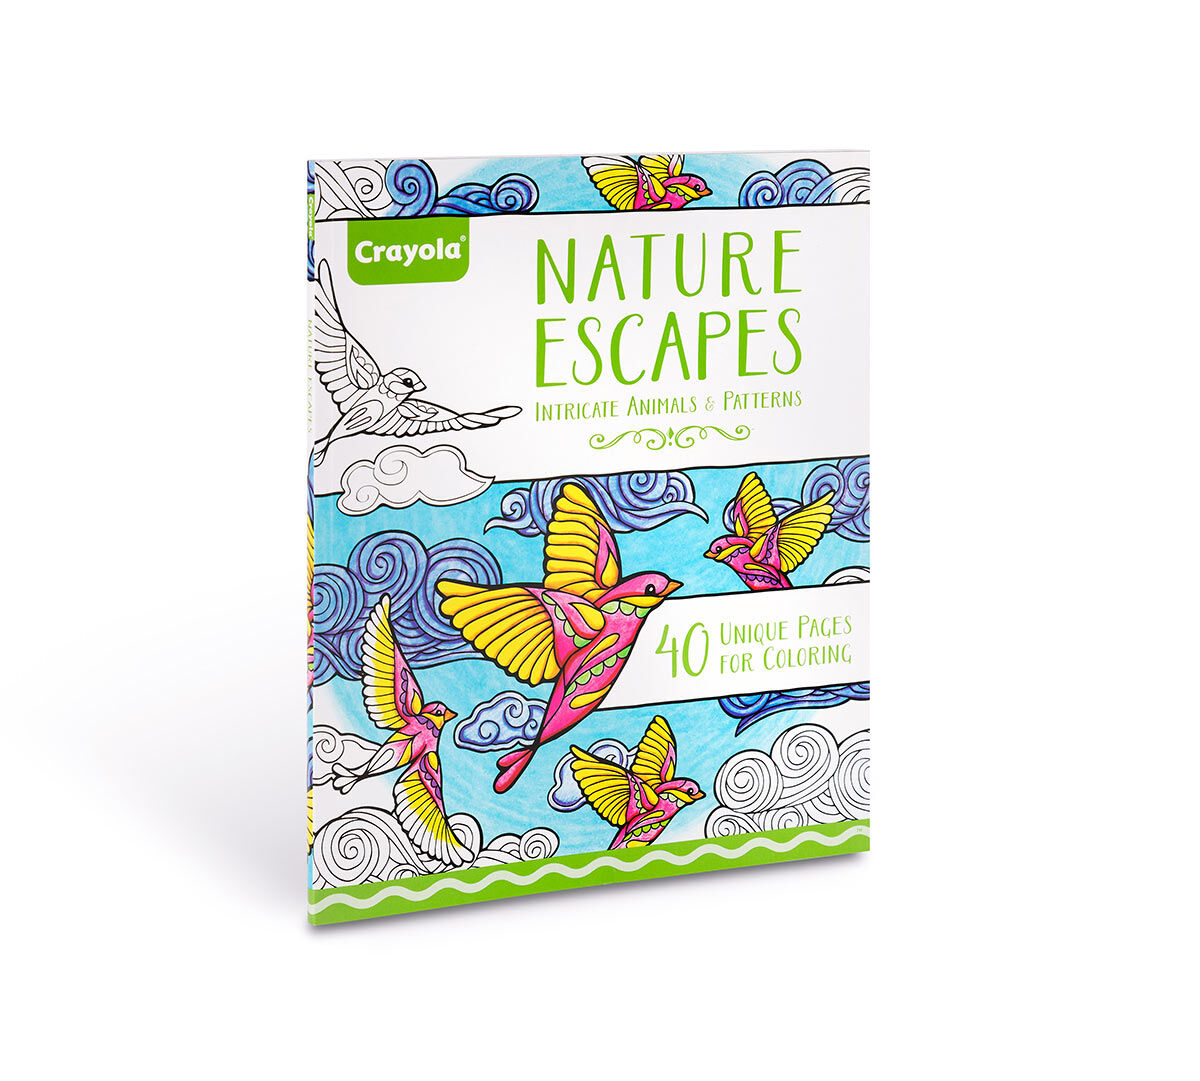 Crayola Nature Escapes Adult Coloring Art Activity 40 Pages Perforated Pages Easy Framing Crayola